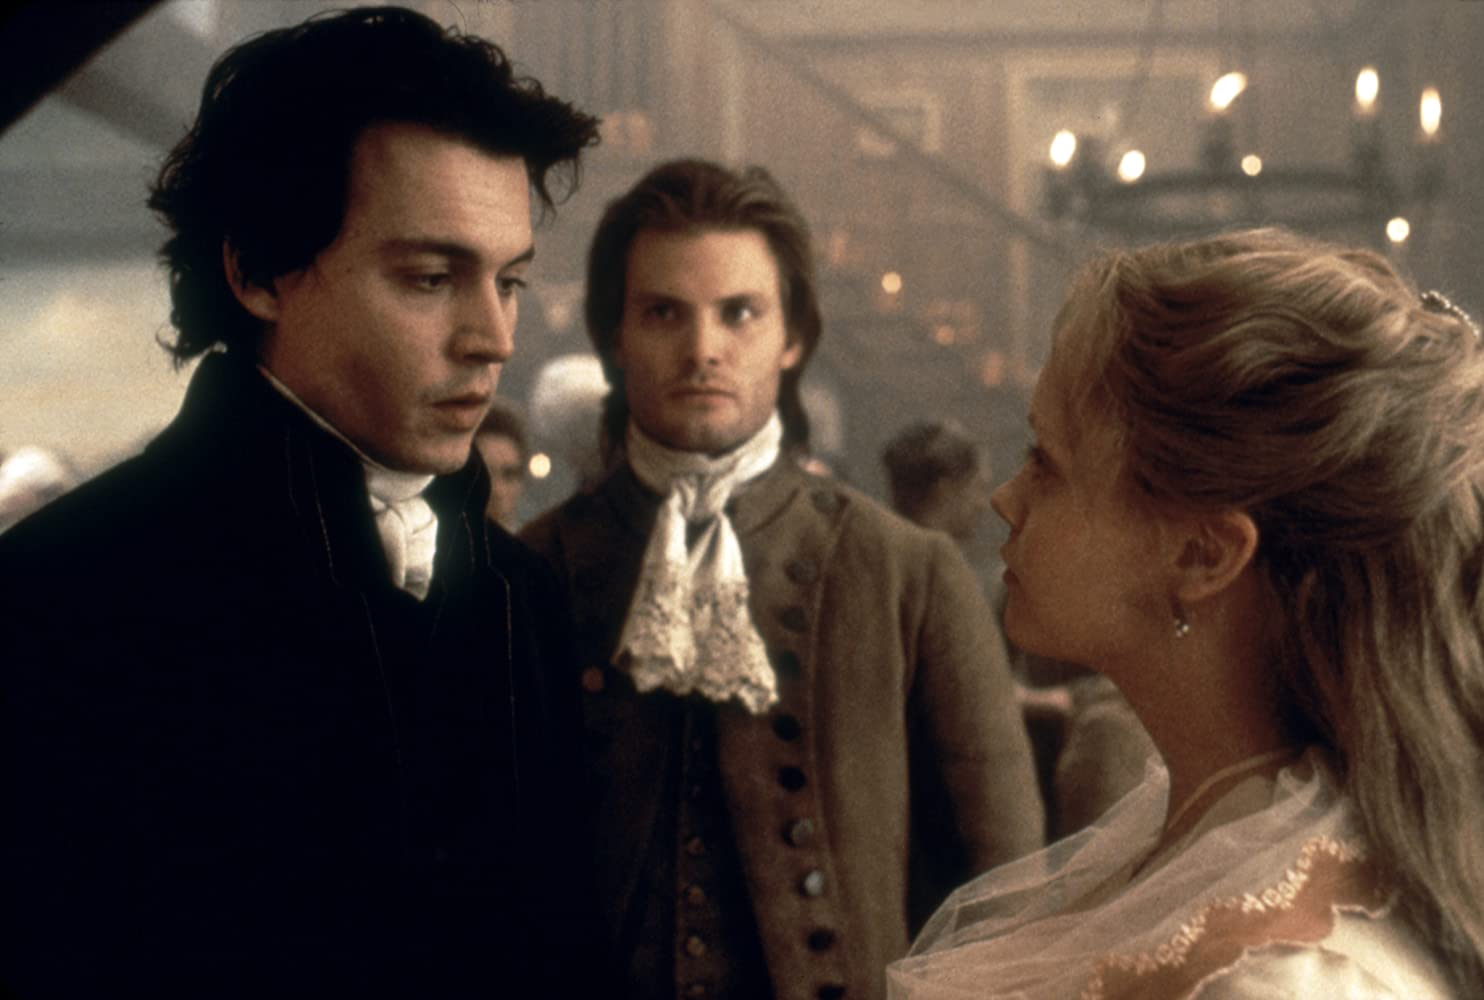 Johnny Depp, Christina Ricci, and Casper Van Dien in Sleepy Hollow (1999)